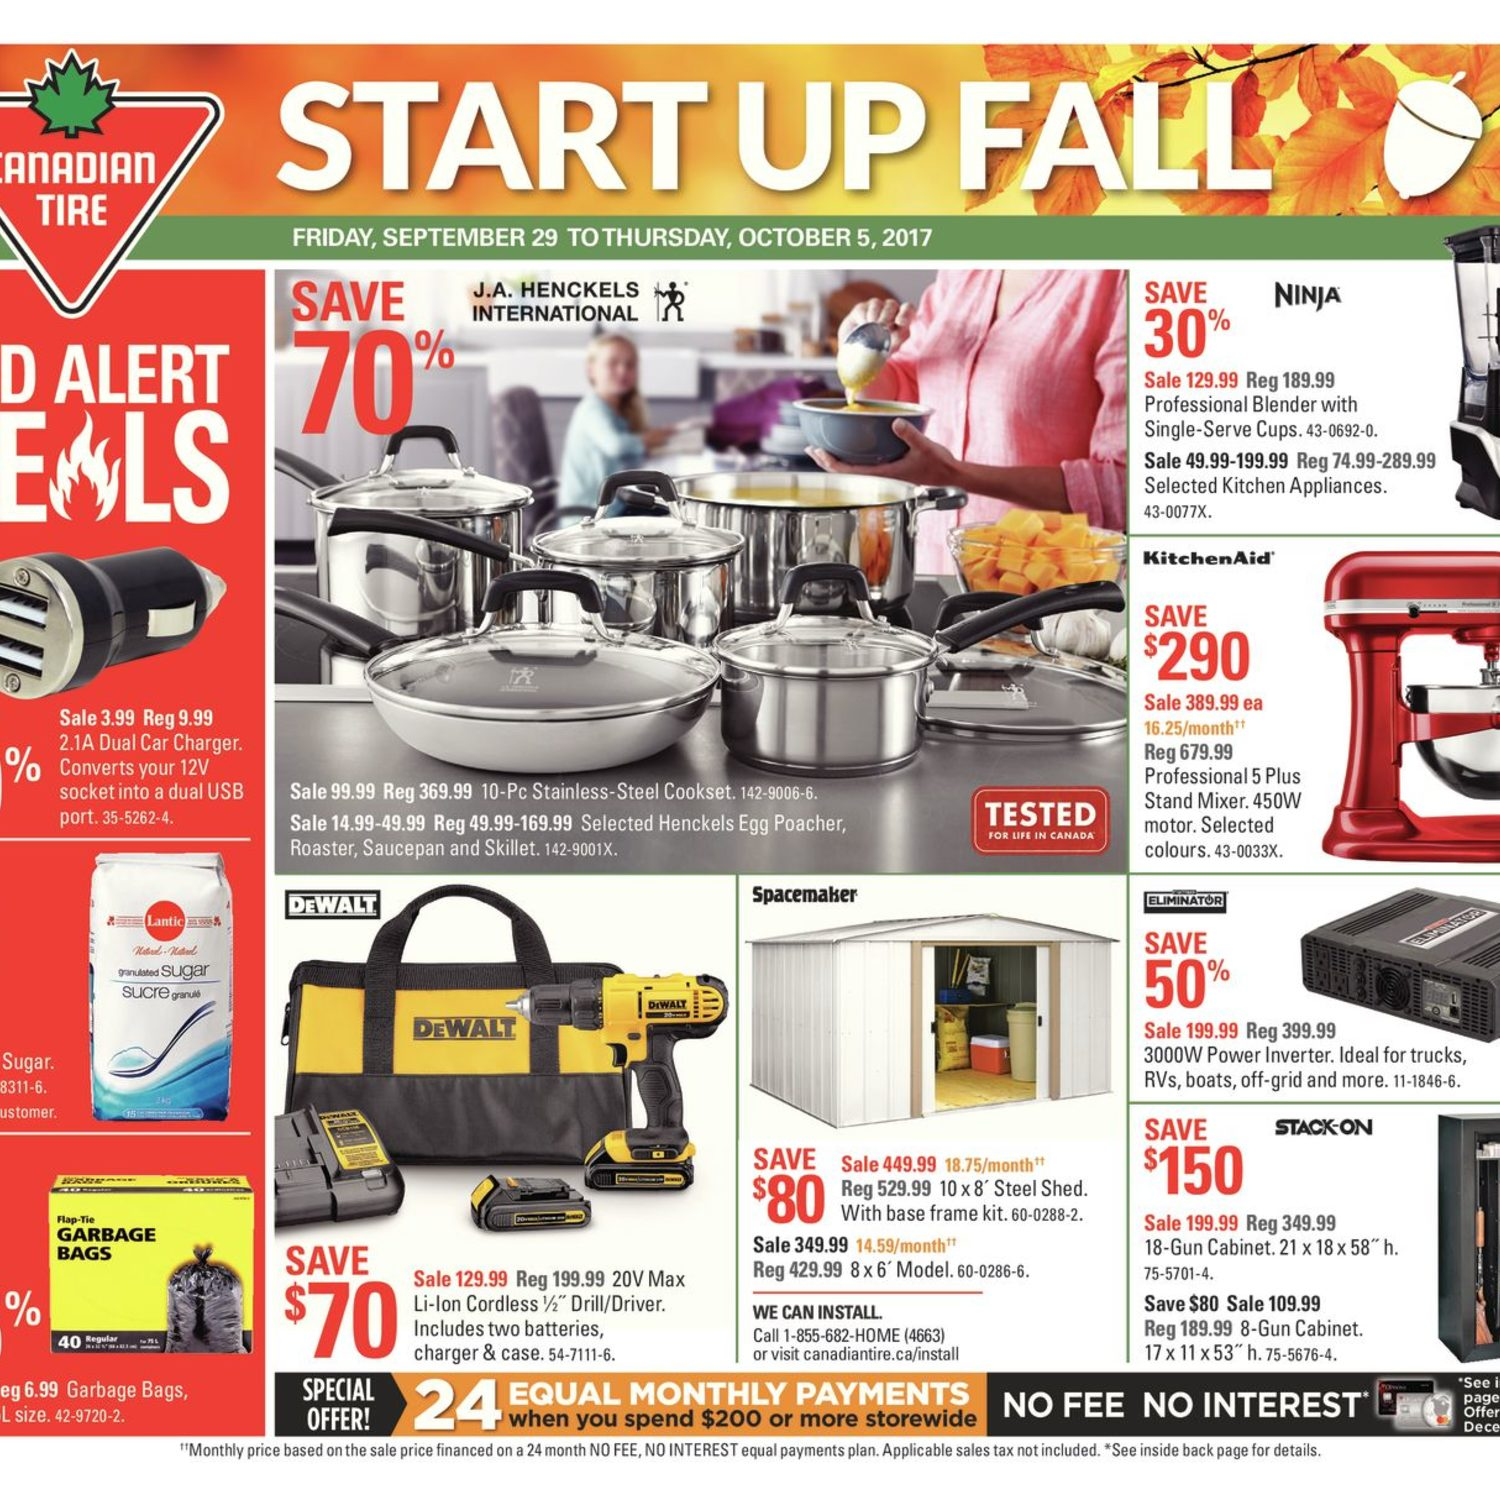 Canadian Tire Weekly Flyer Weekly Start Up Fall Sep 29 – Oct 5